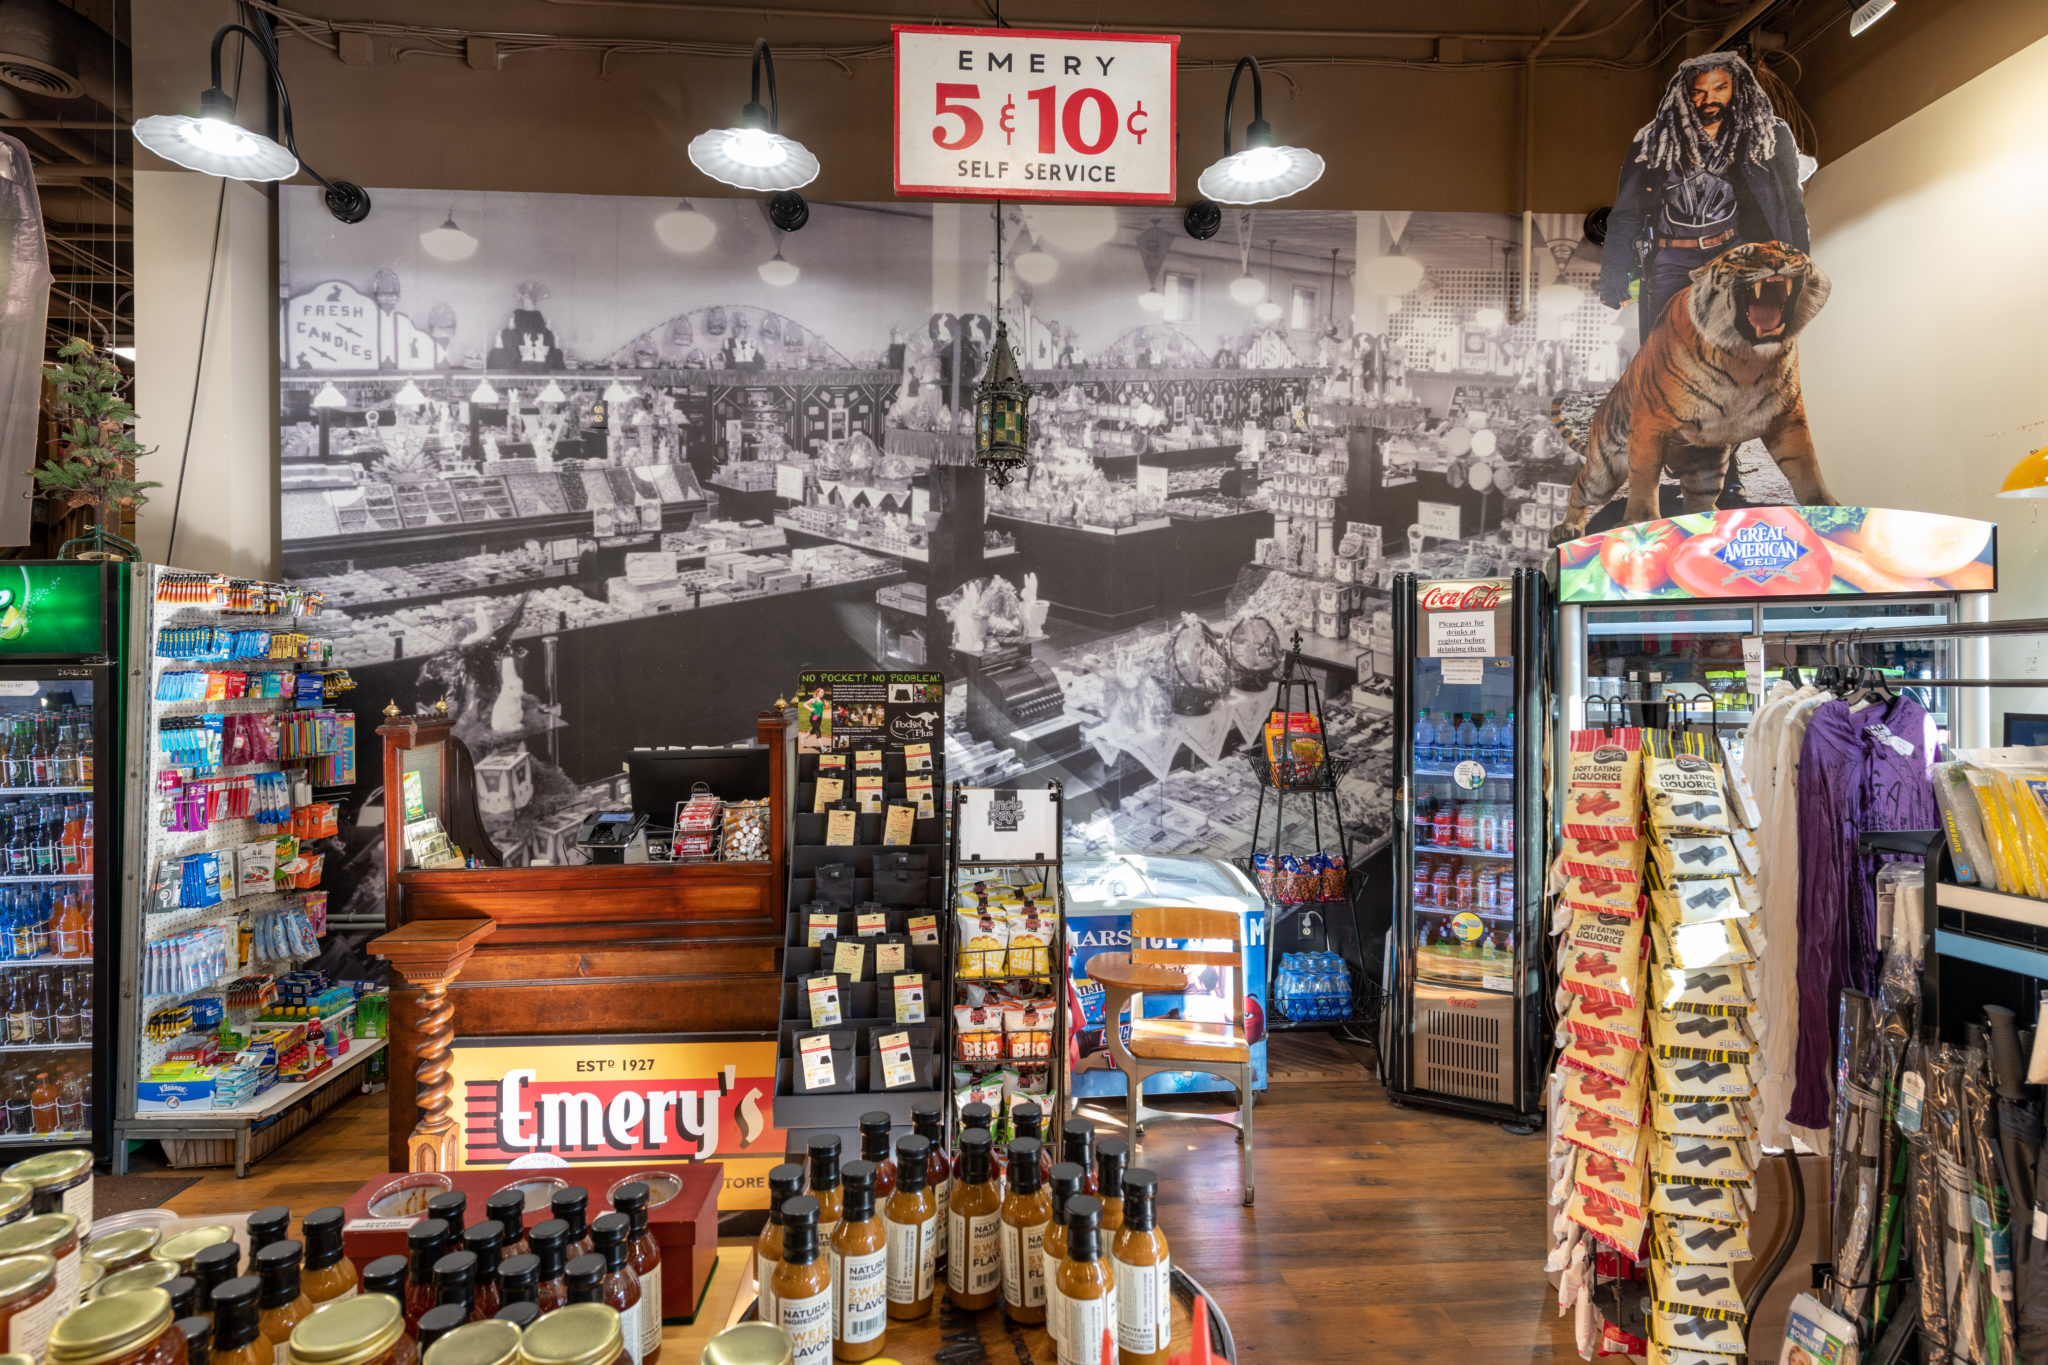 Displays filled with products inside Emery's 5 & 10